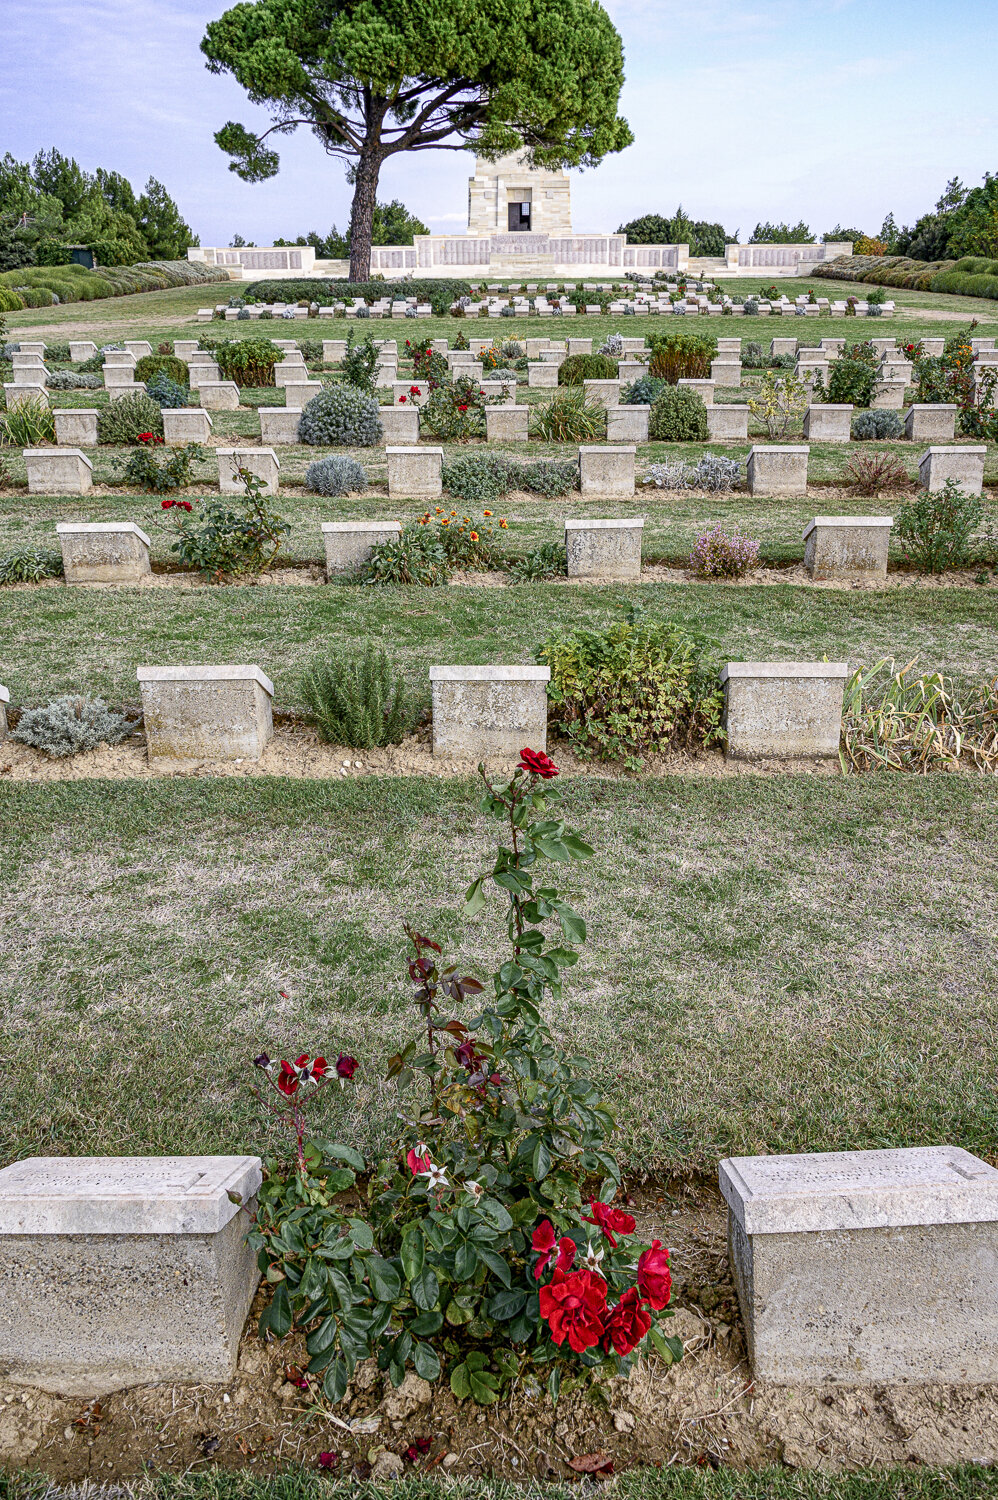 Lone Pine Memorial, Gallipoli, Turkey